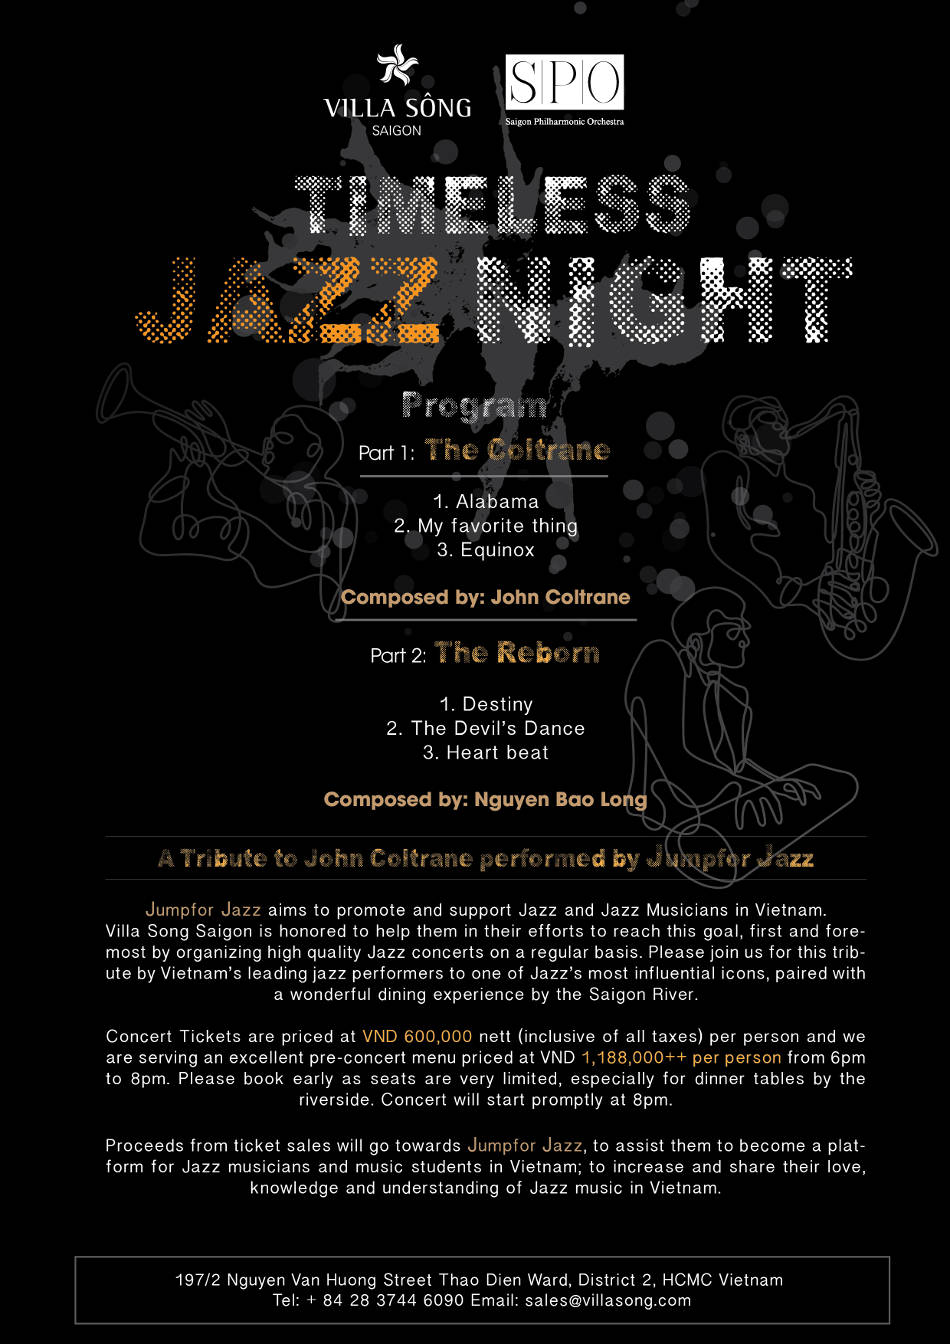 Villa Song Saigon Jazz night program